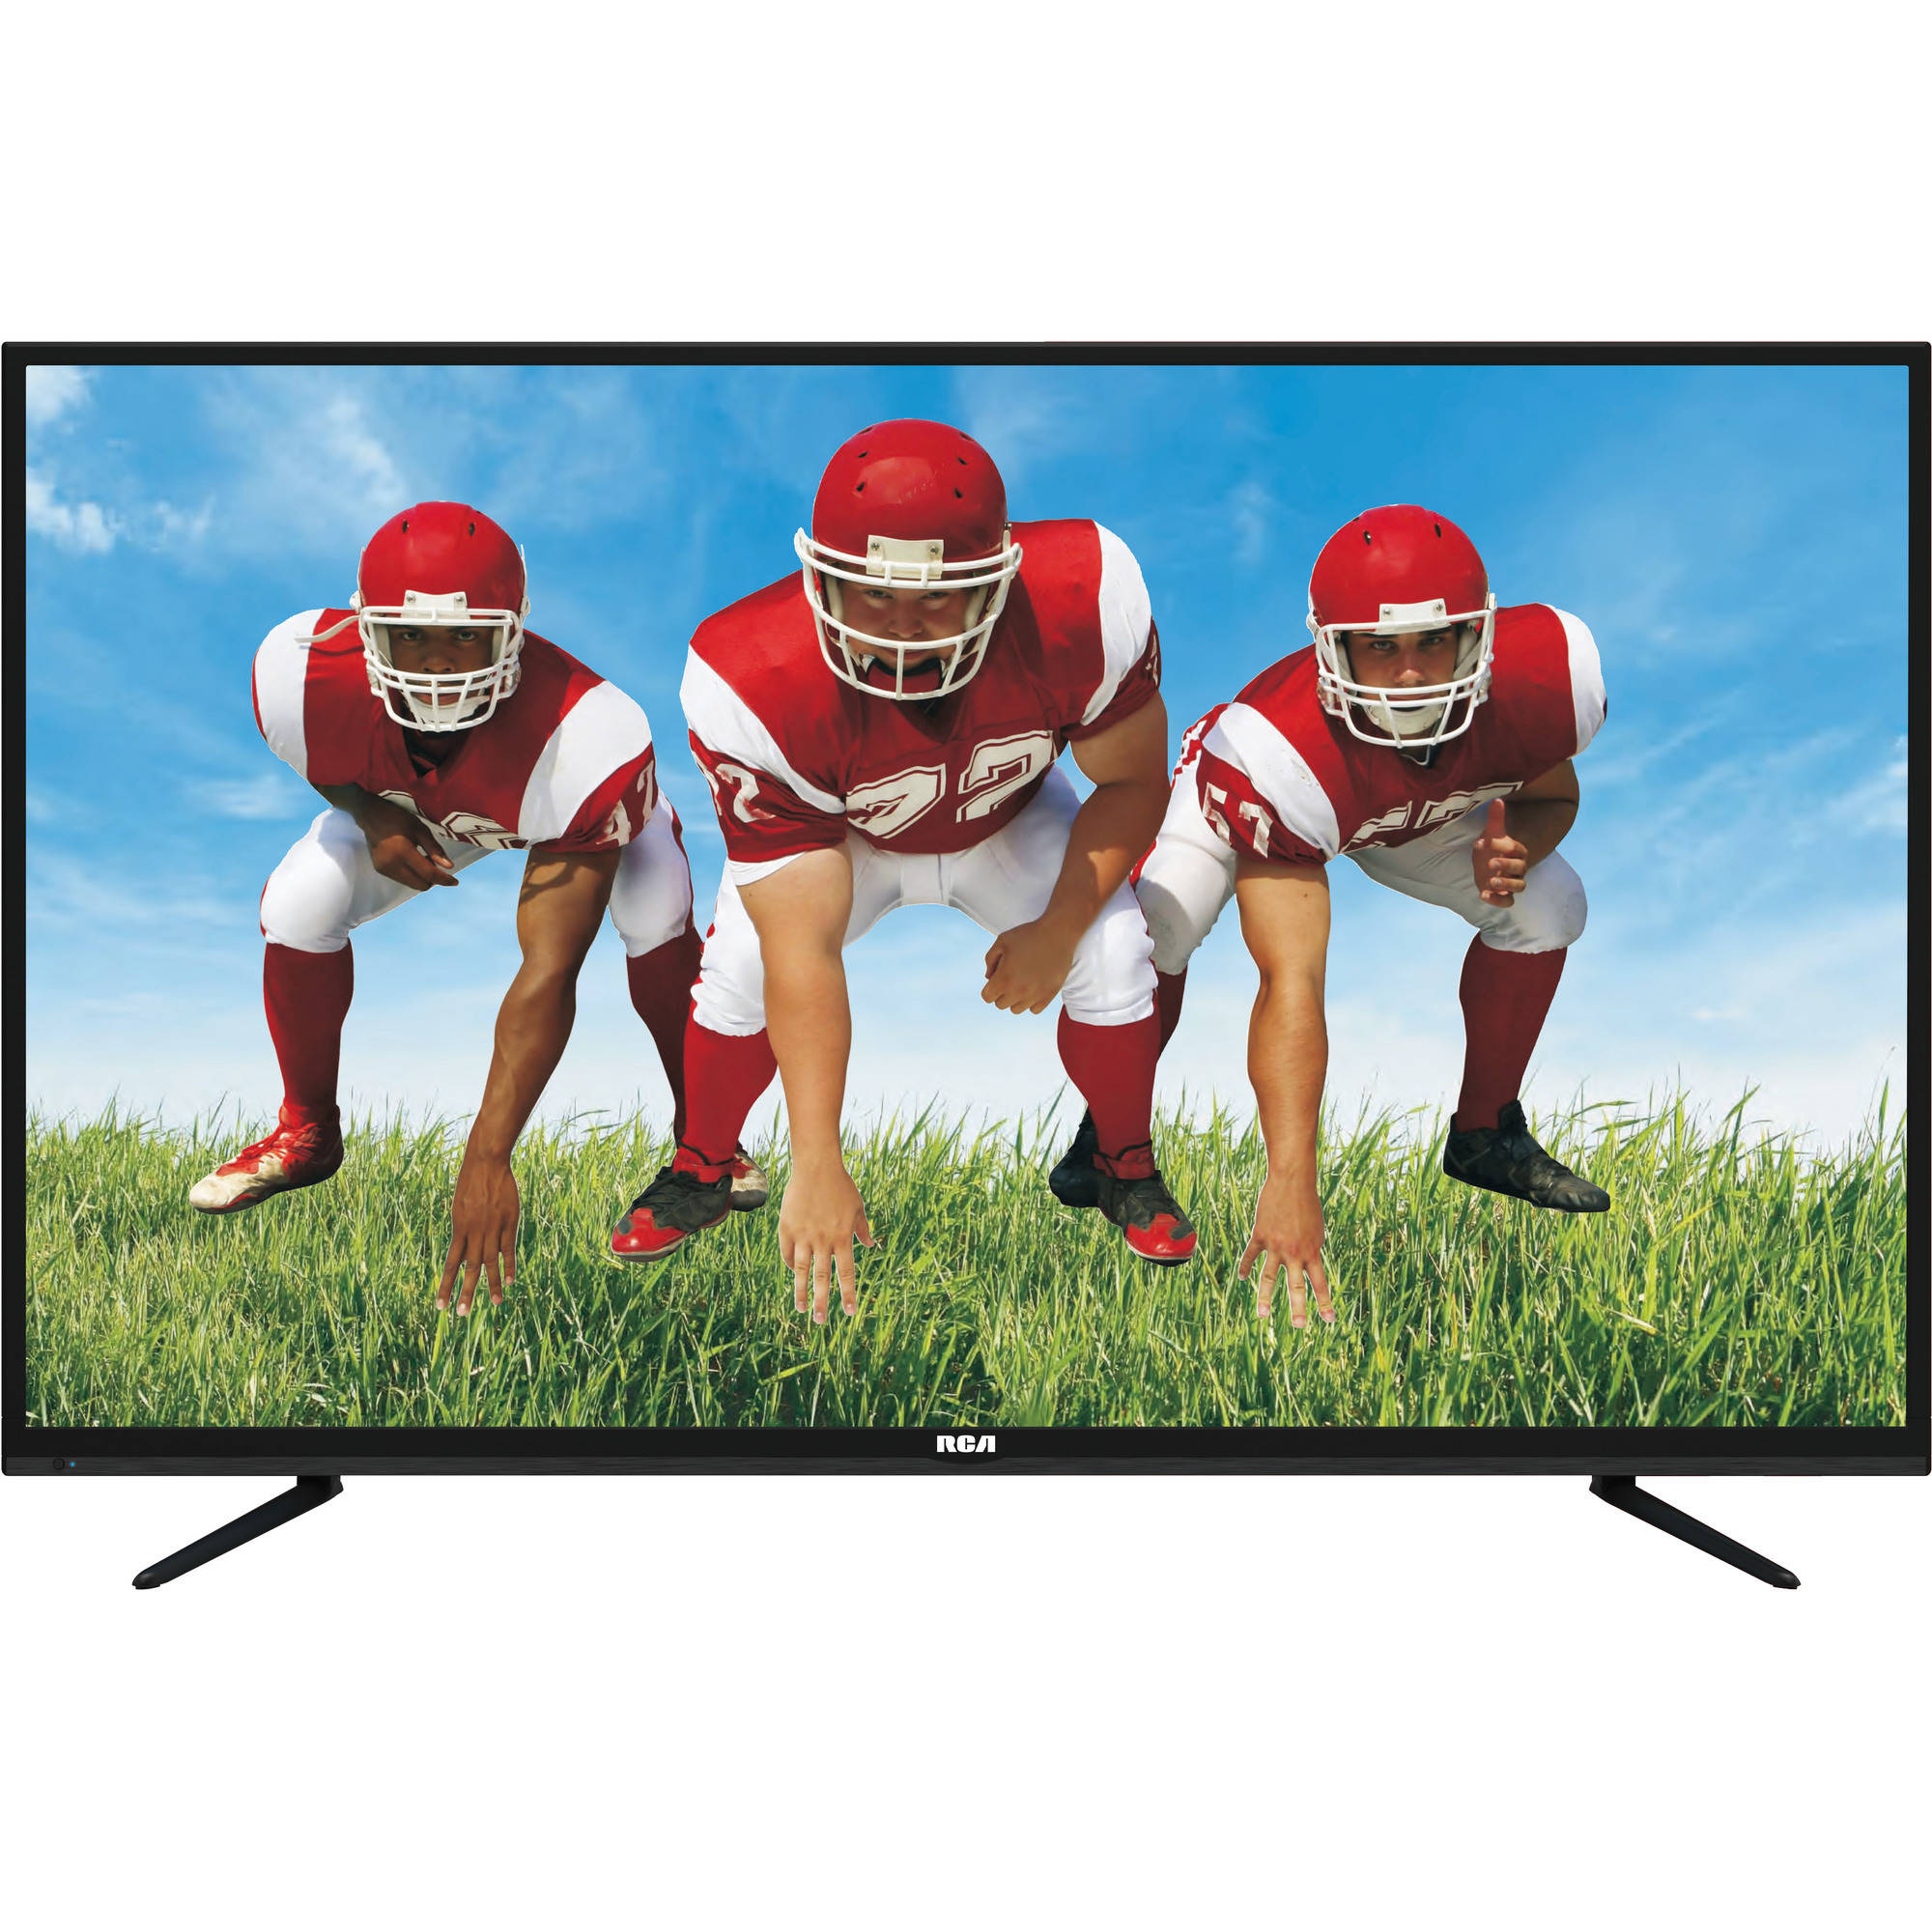 "RCA 60"" Class - Full HD LED TV - 1080p, 120Hz (RLED6090)"